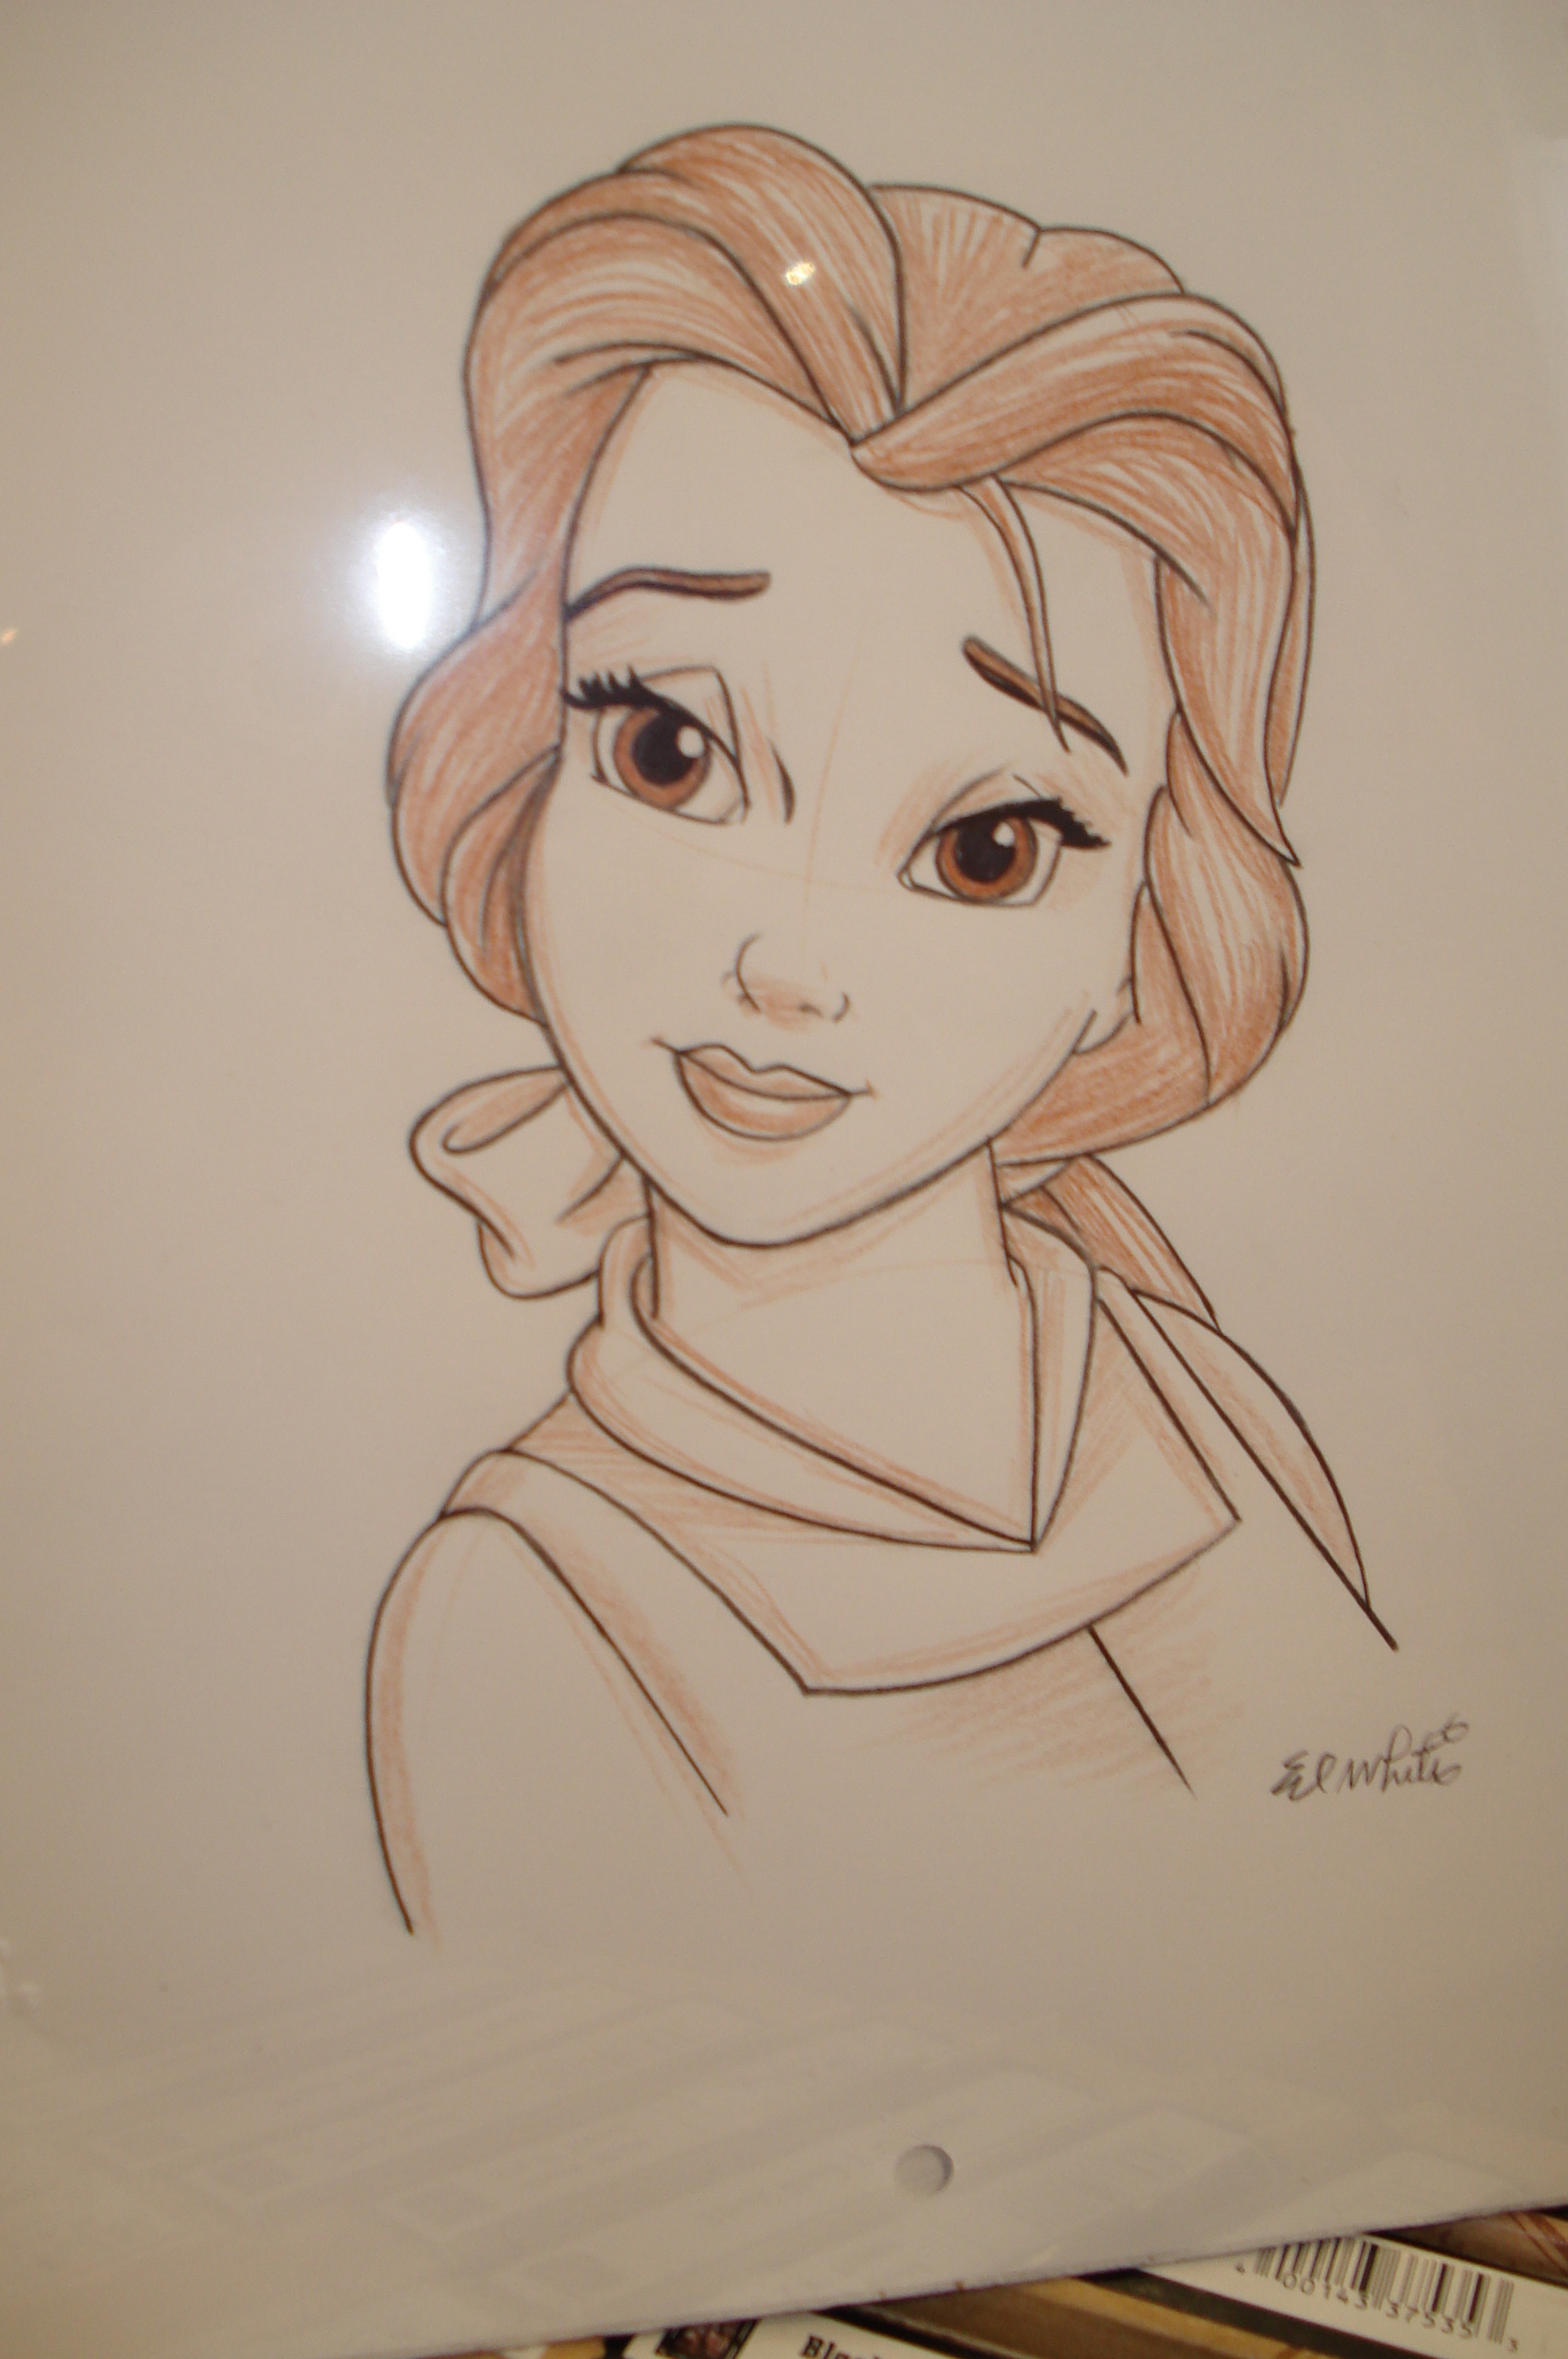 Drawn princess disney character #4